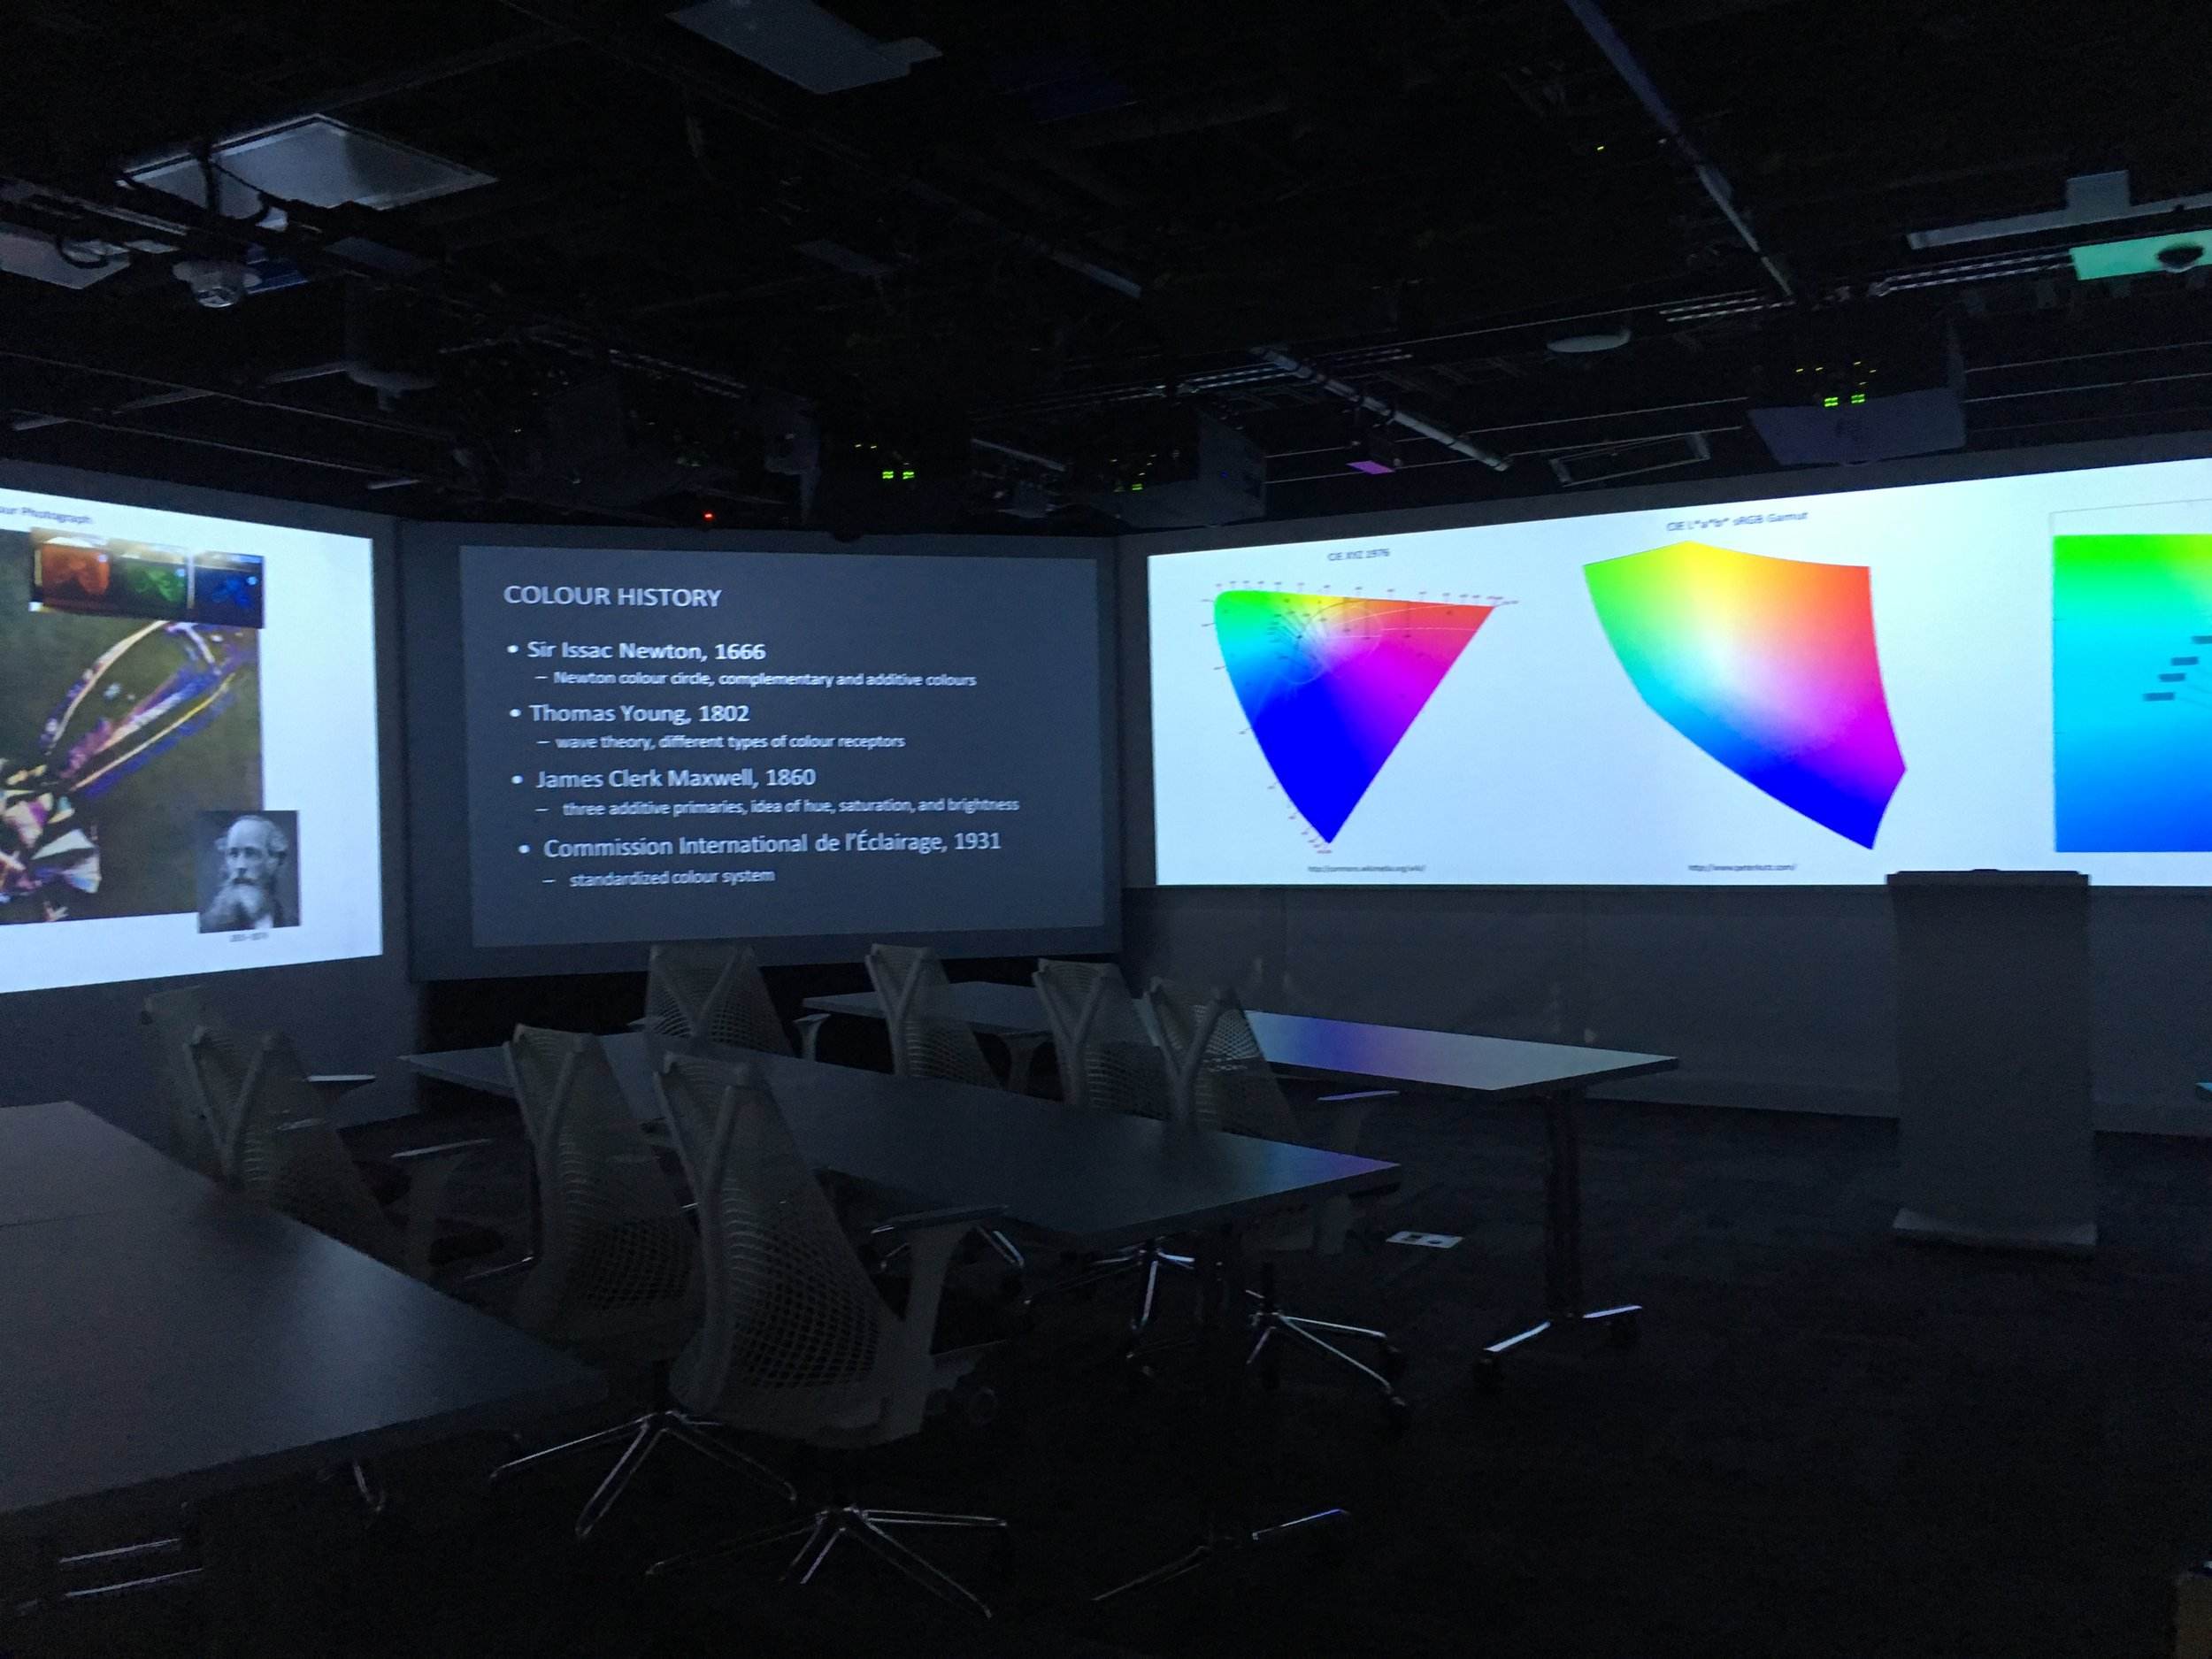 Example of a large video wall. Our goal is to provide a lightweight management tool that would allow inexperienced users to manage the content.